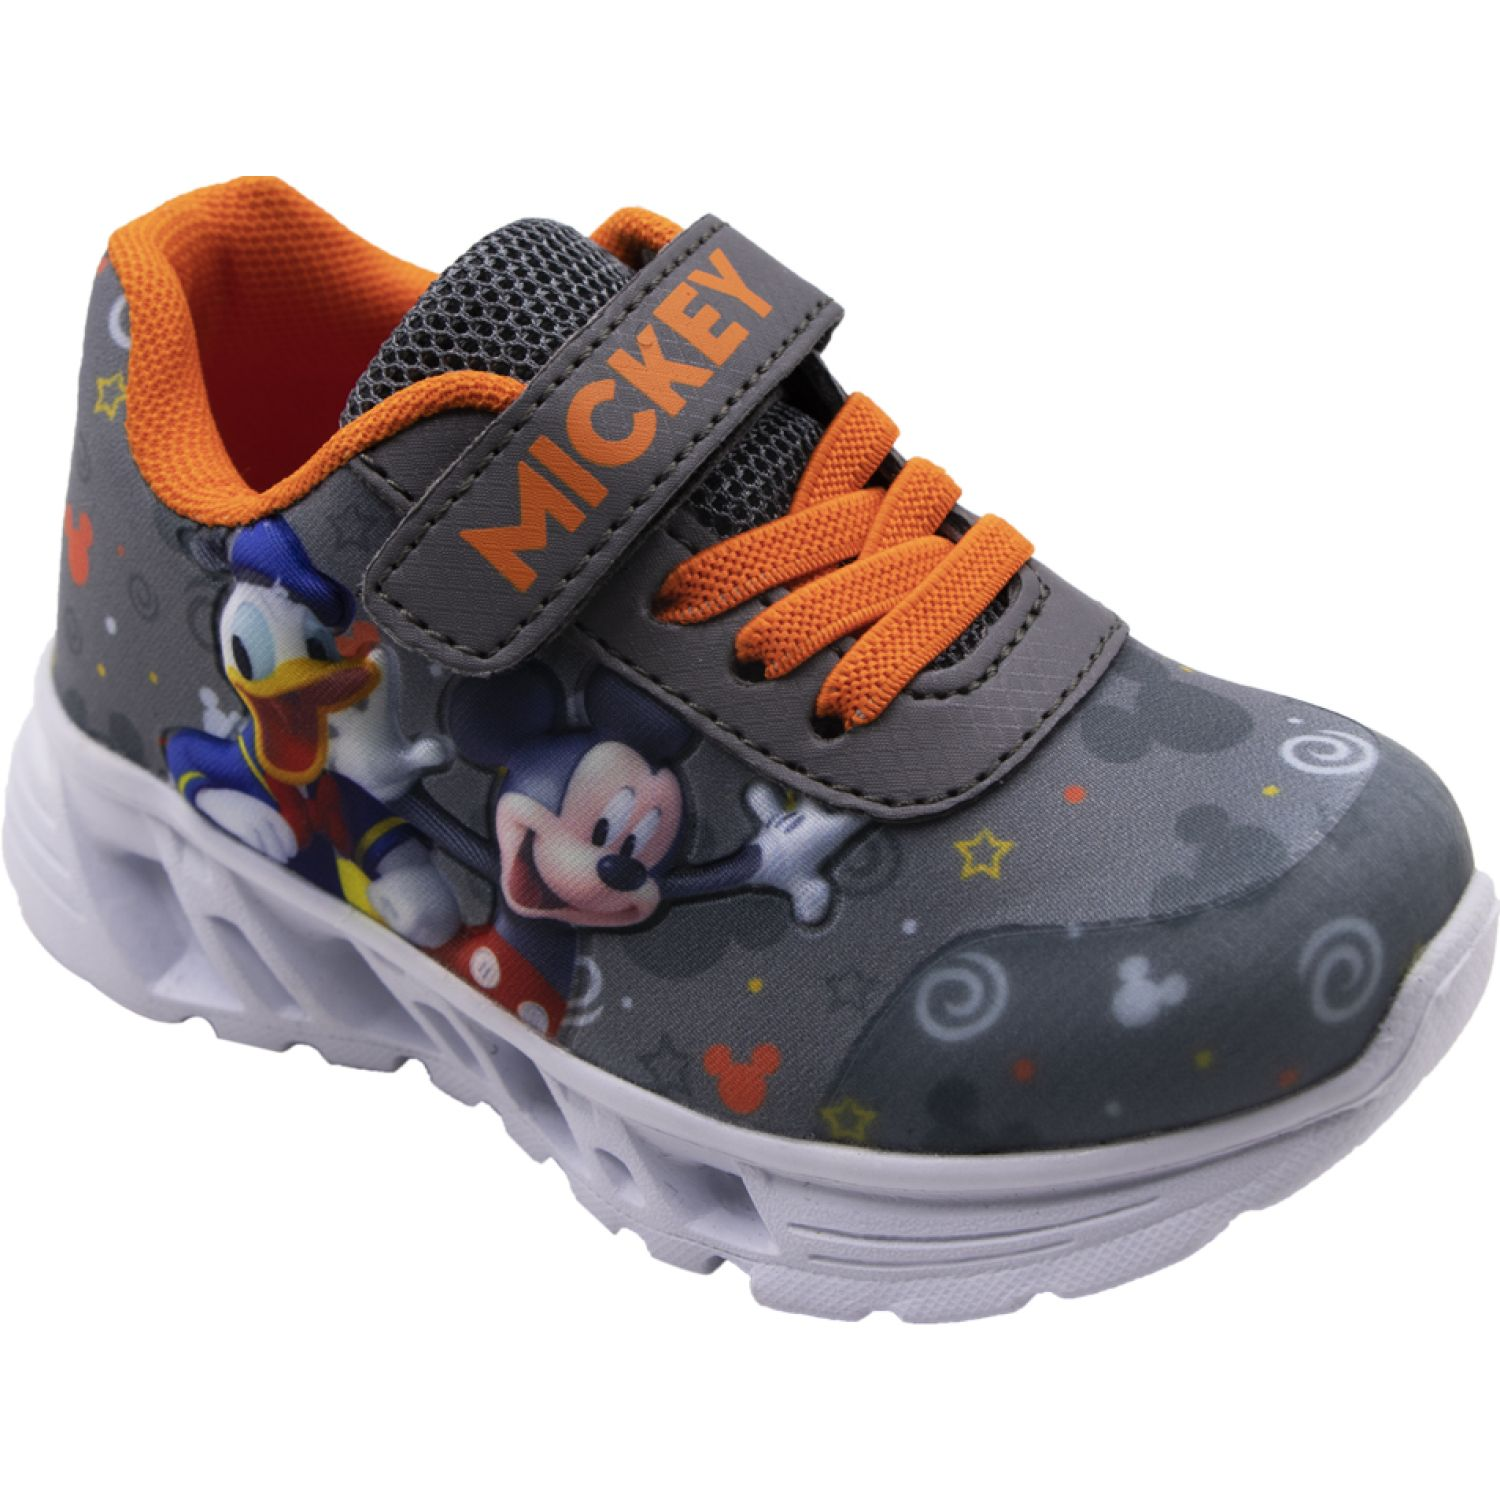 Mickey 2mczxv192 Gris / naranja Walking